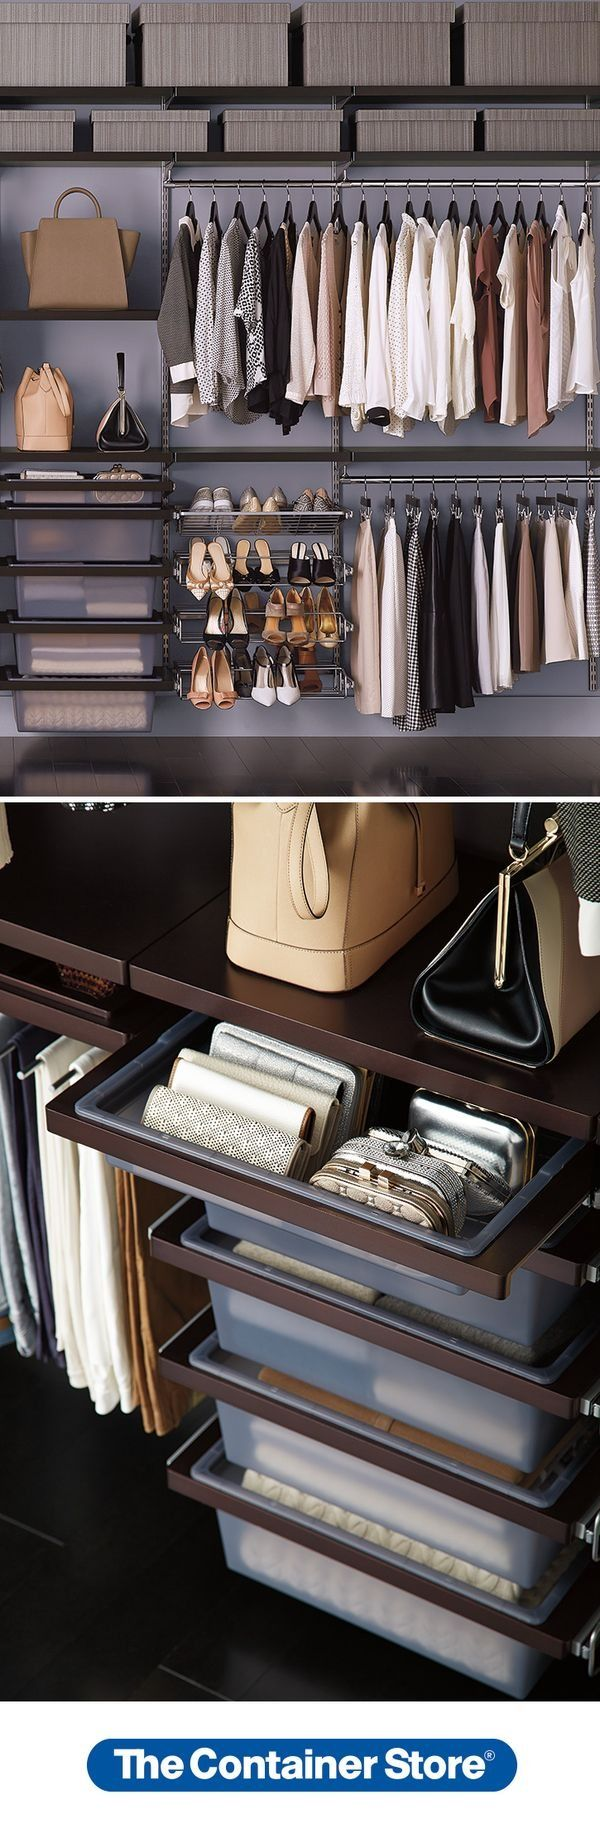 From shoes to handbags, there's a place for everything in an elfa closet! This one features Walnut Decor Shelves and Hanging Drawers.